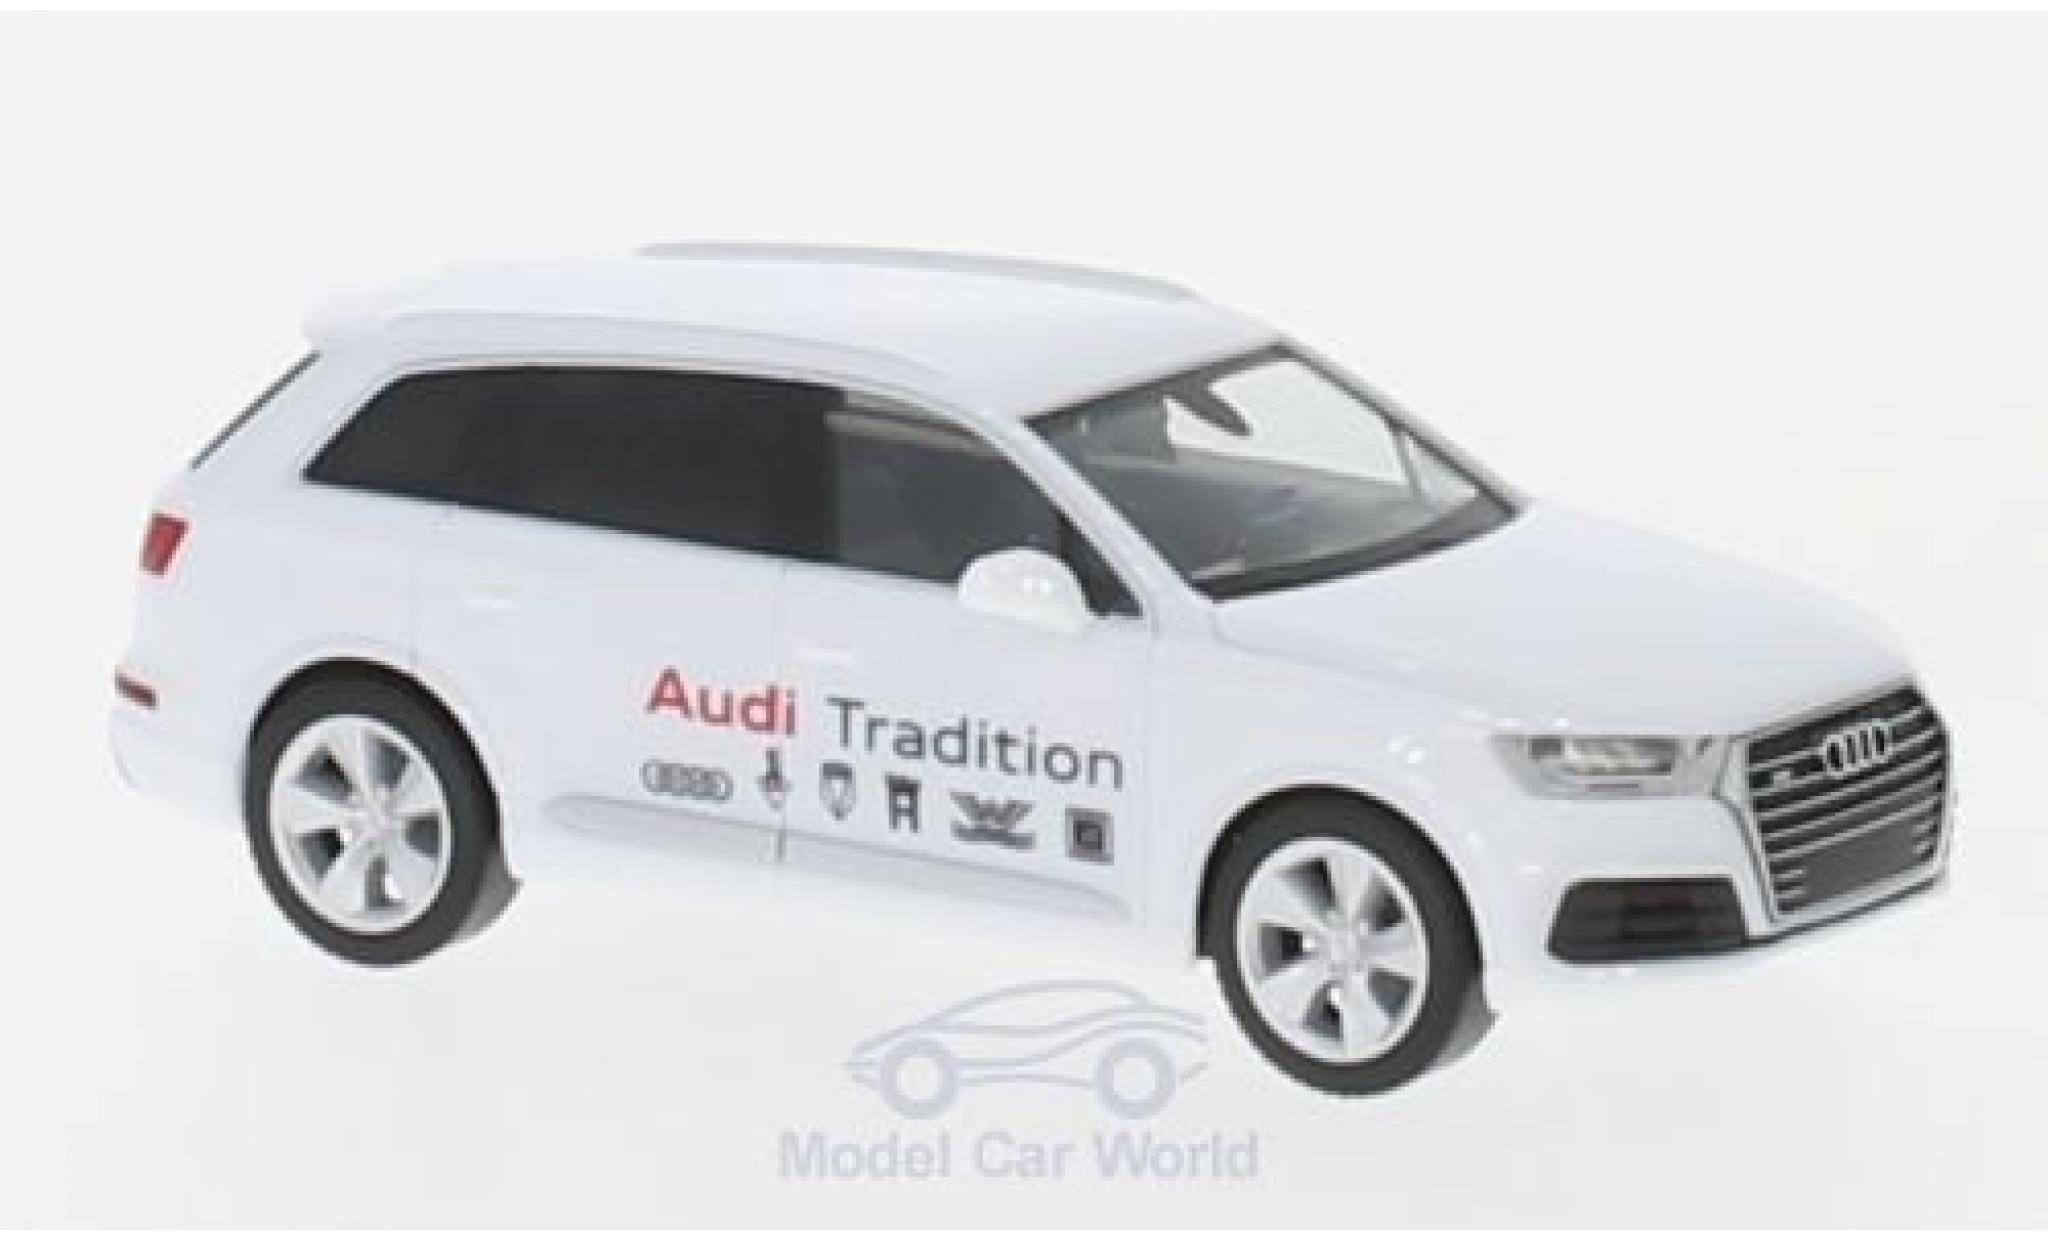 Audi Q7 1/87 Herpa Mobile Tradition